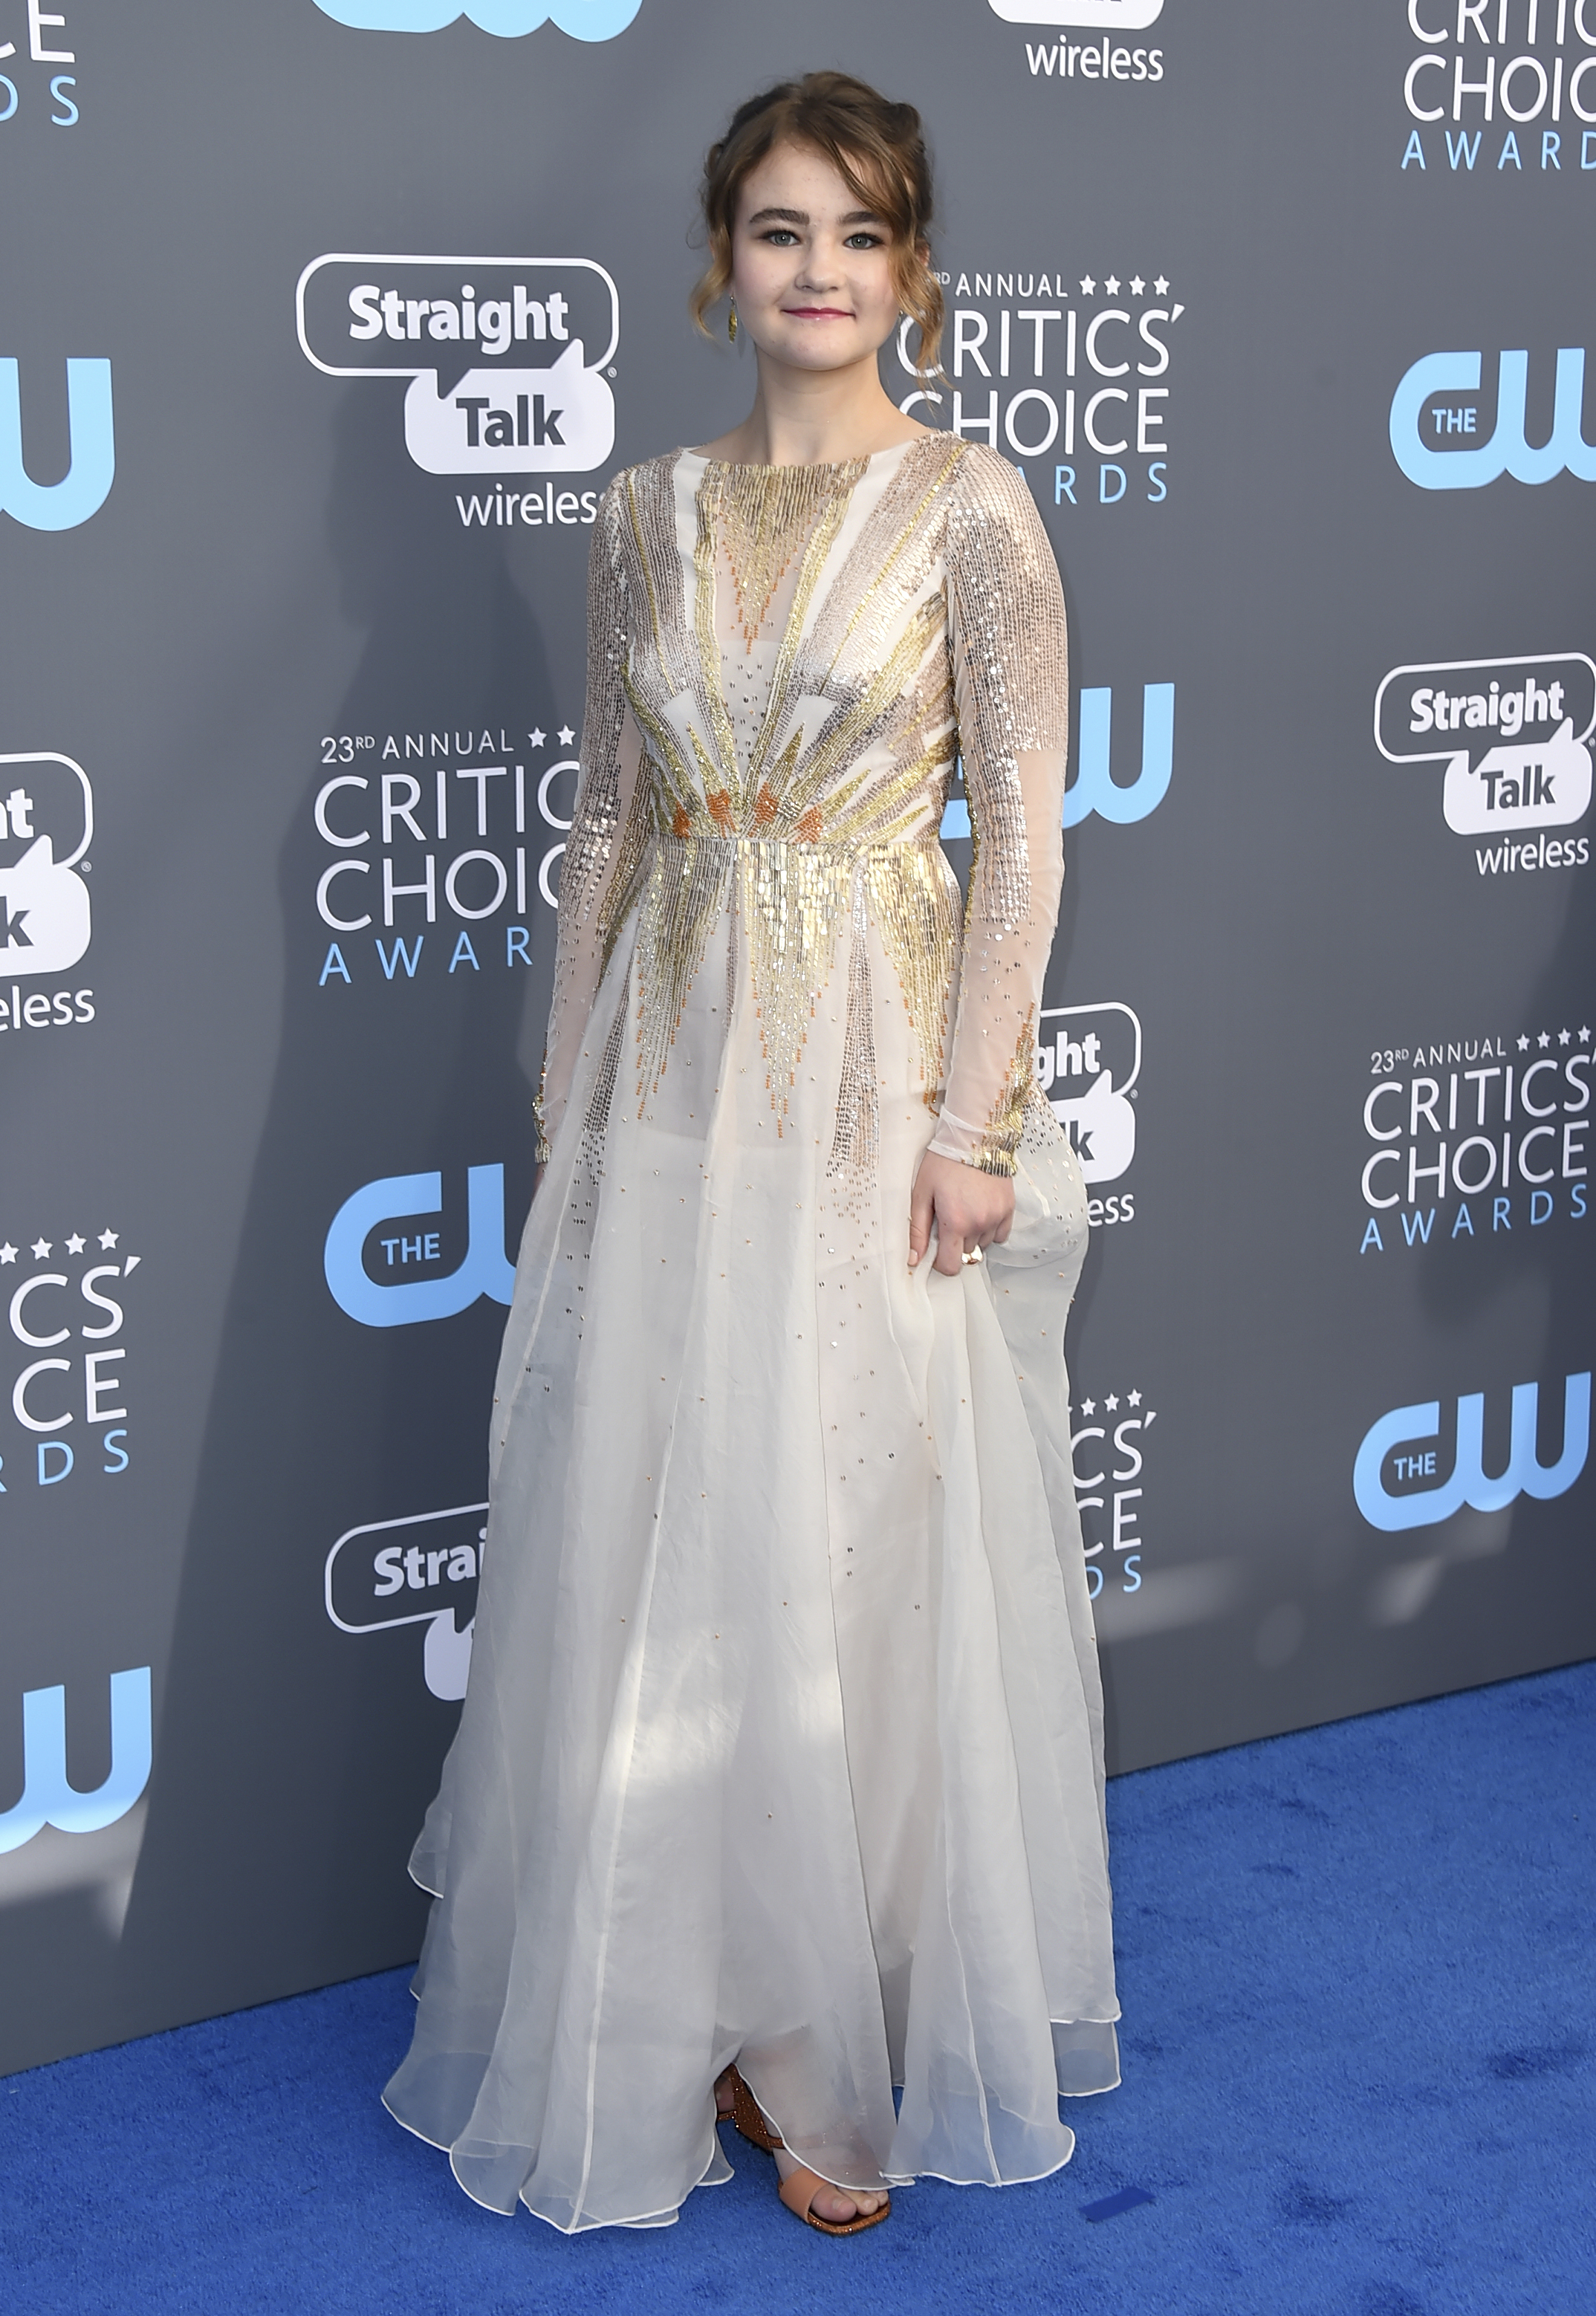 <div class='meta'><div class='origin-logo' data-origin='AP'></div><span class='caption-text' data-credit='Jordan Strauss/Invision/AP'>Millicent Simmonds arrives at the 23rd annual Critics' Choice Awards at the Barker Hangar on Thursday, Jan. 11, 2018, in Santa Monica, Calif.</span></div>